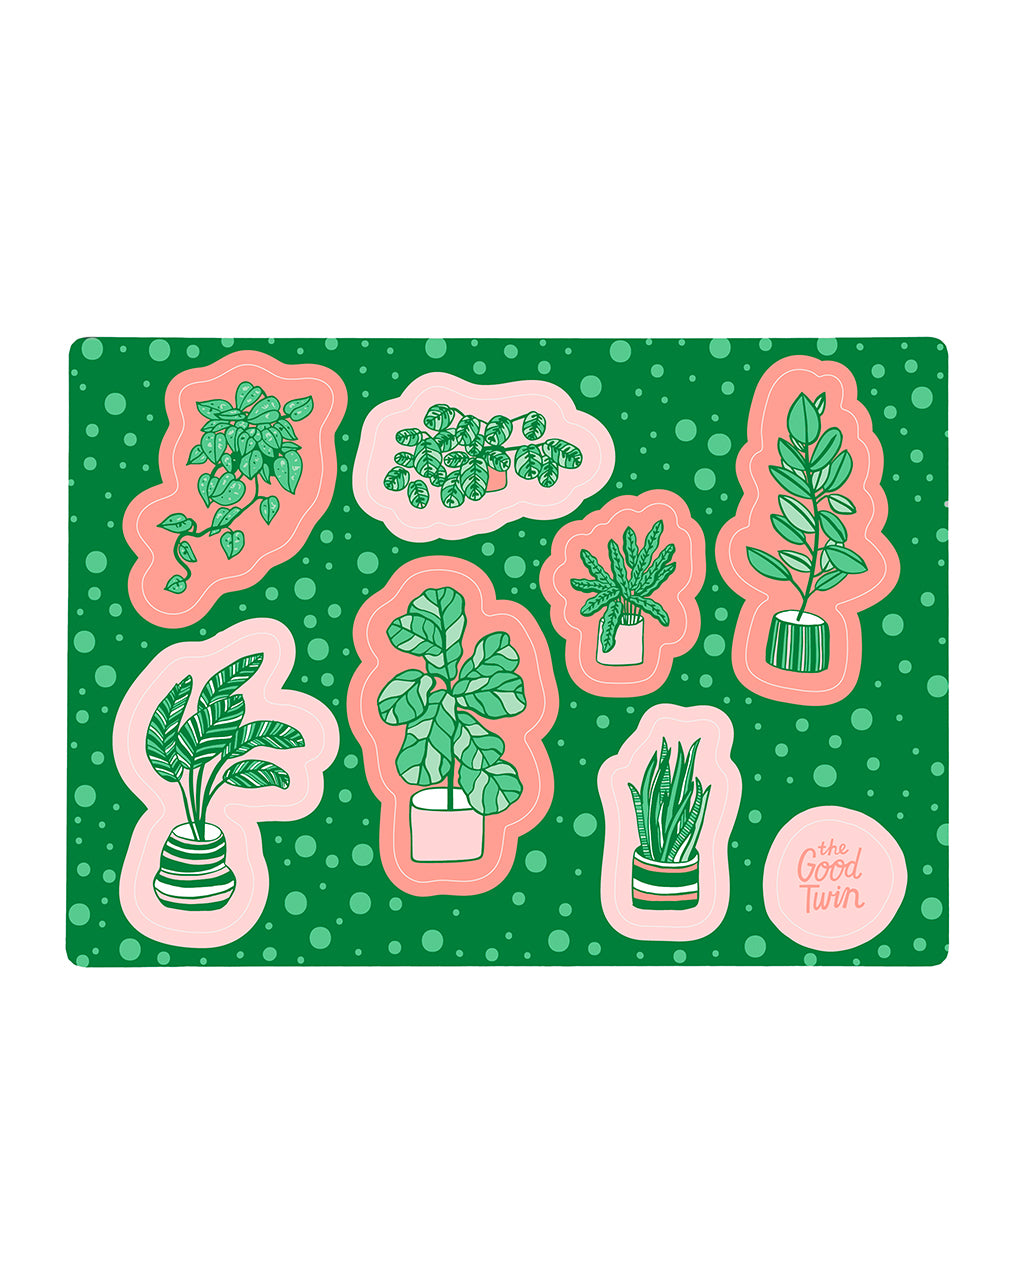 Plants sticker sheet by the good twin stickers ban do